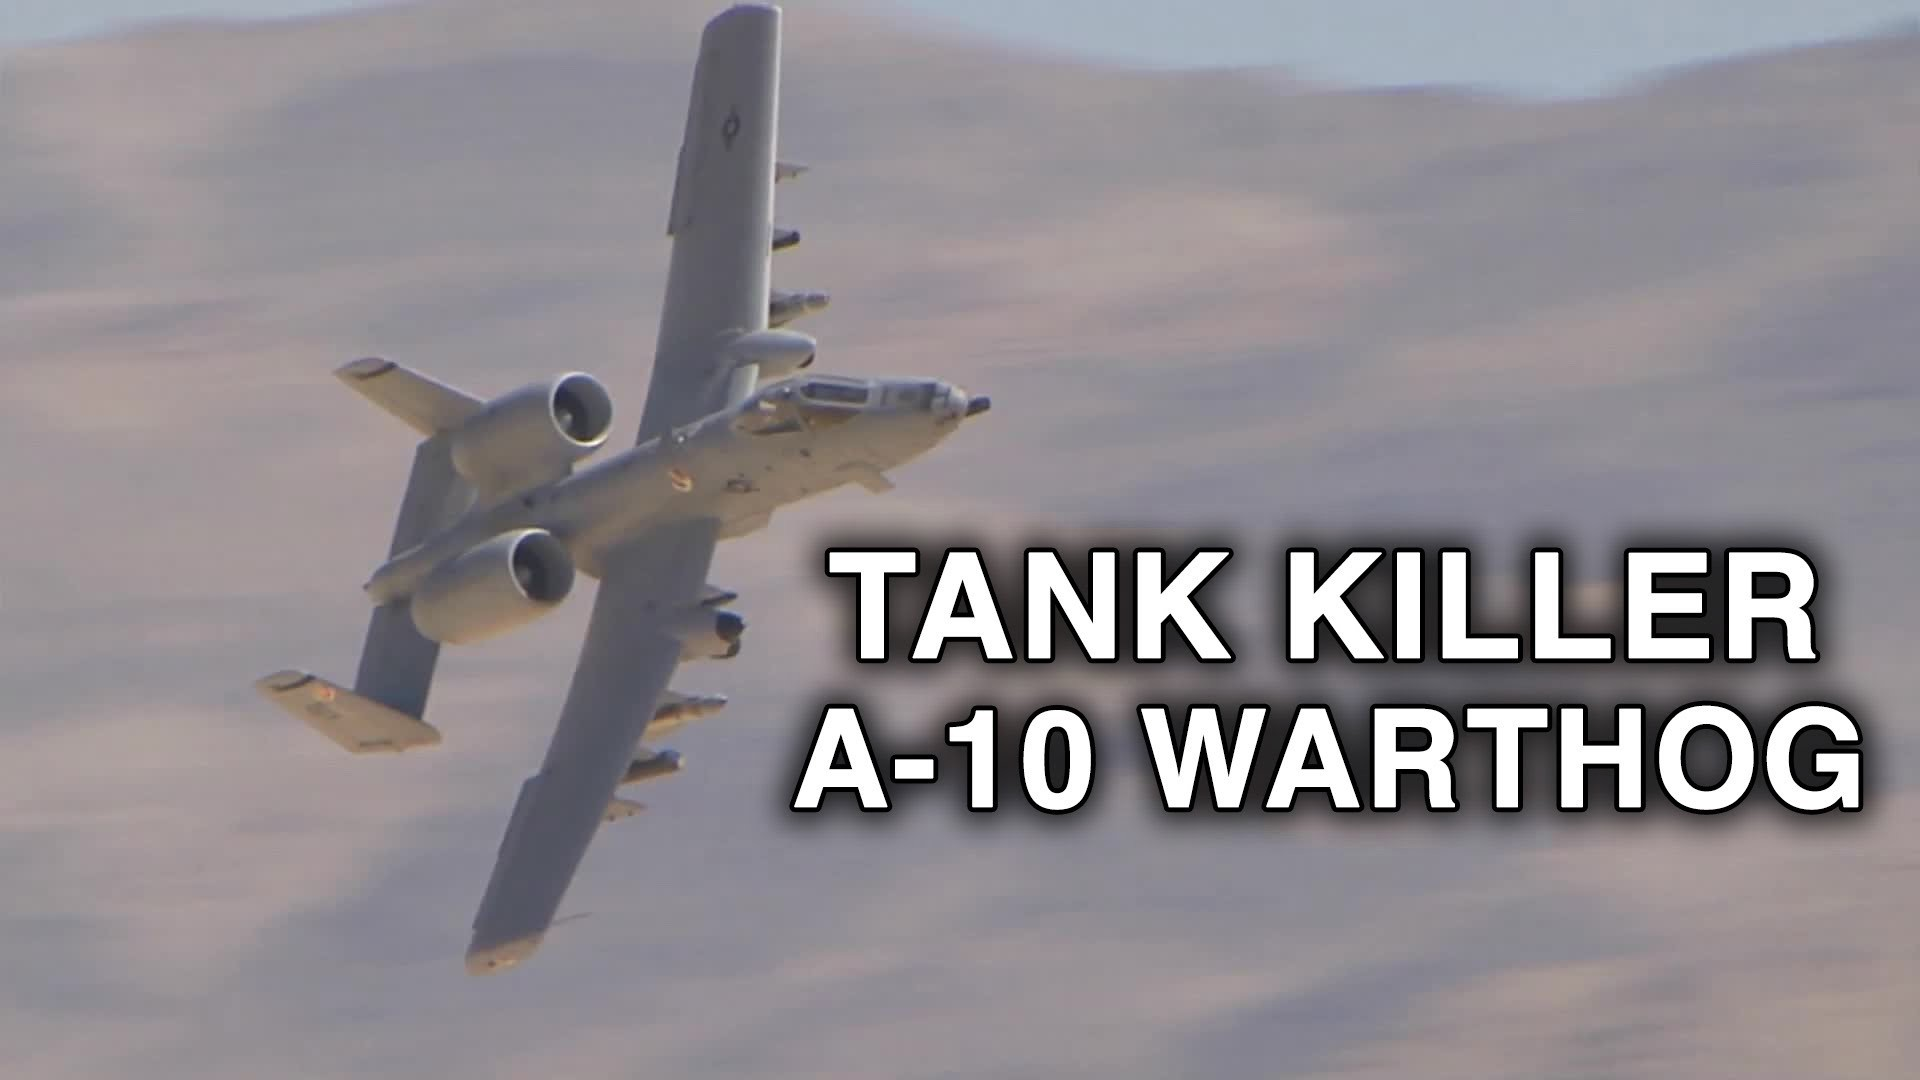 A-10 Warthog in Action – Avenger Autocannon, Rockets Live Fire – YouTube